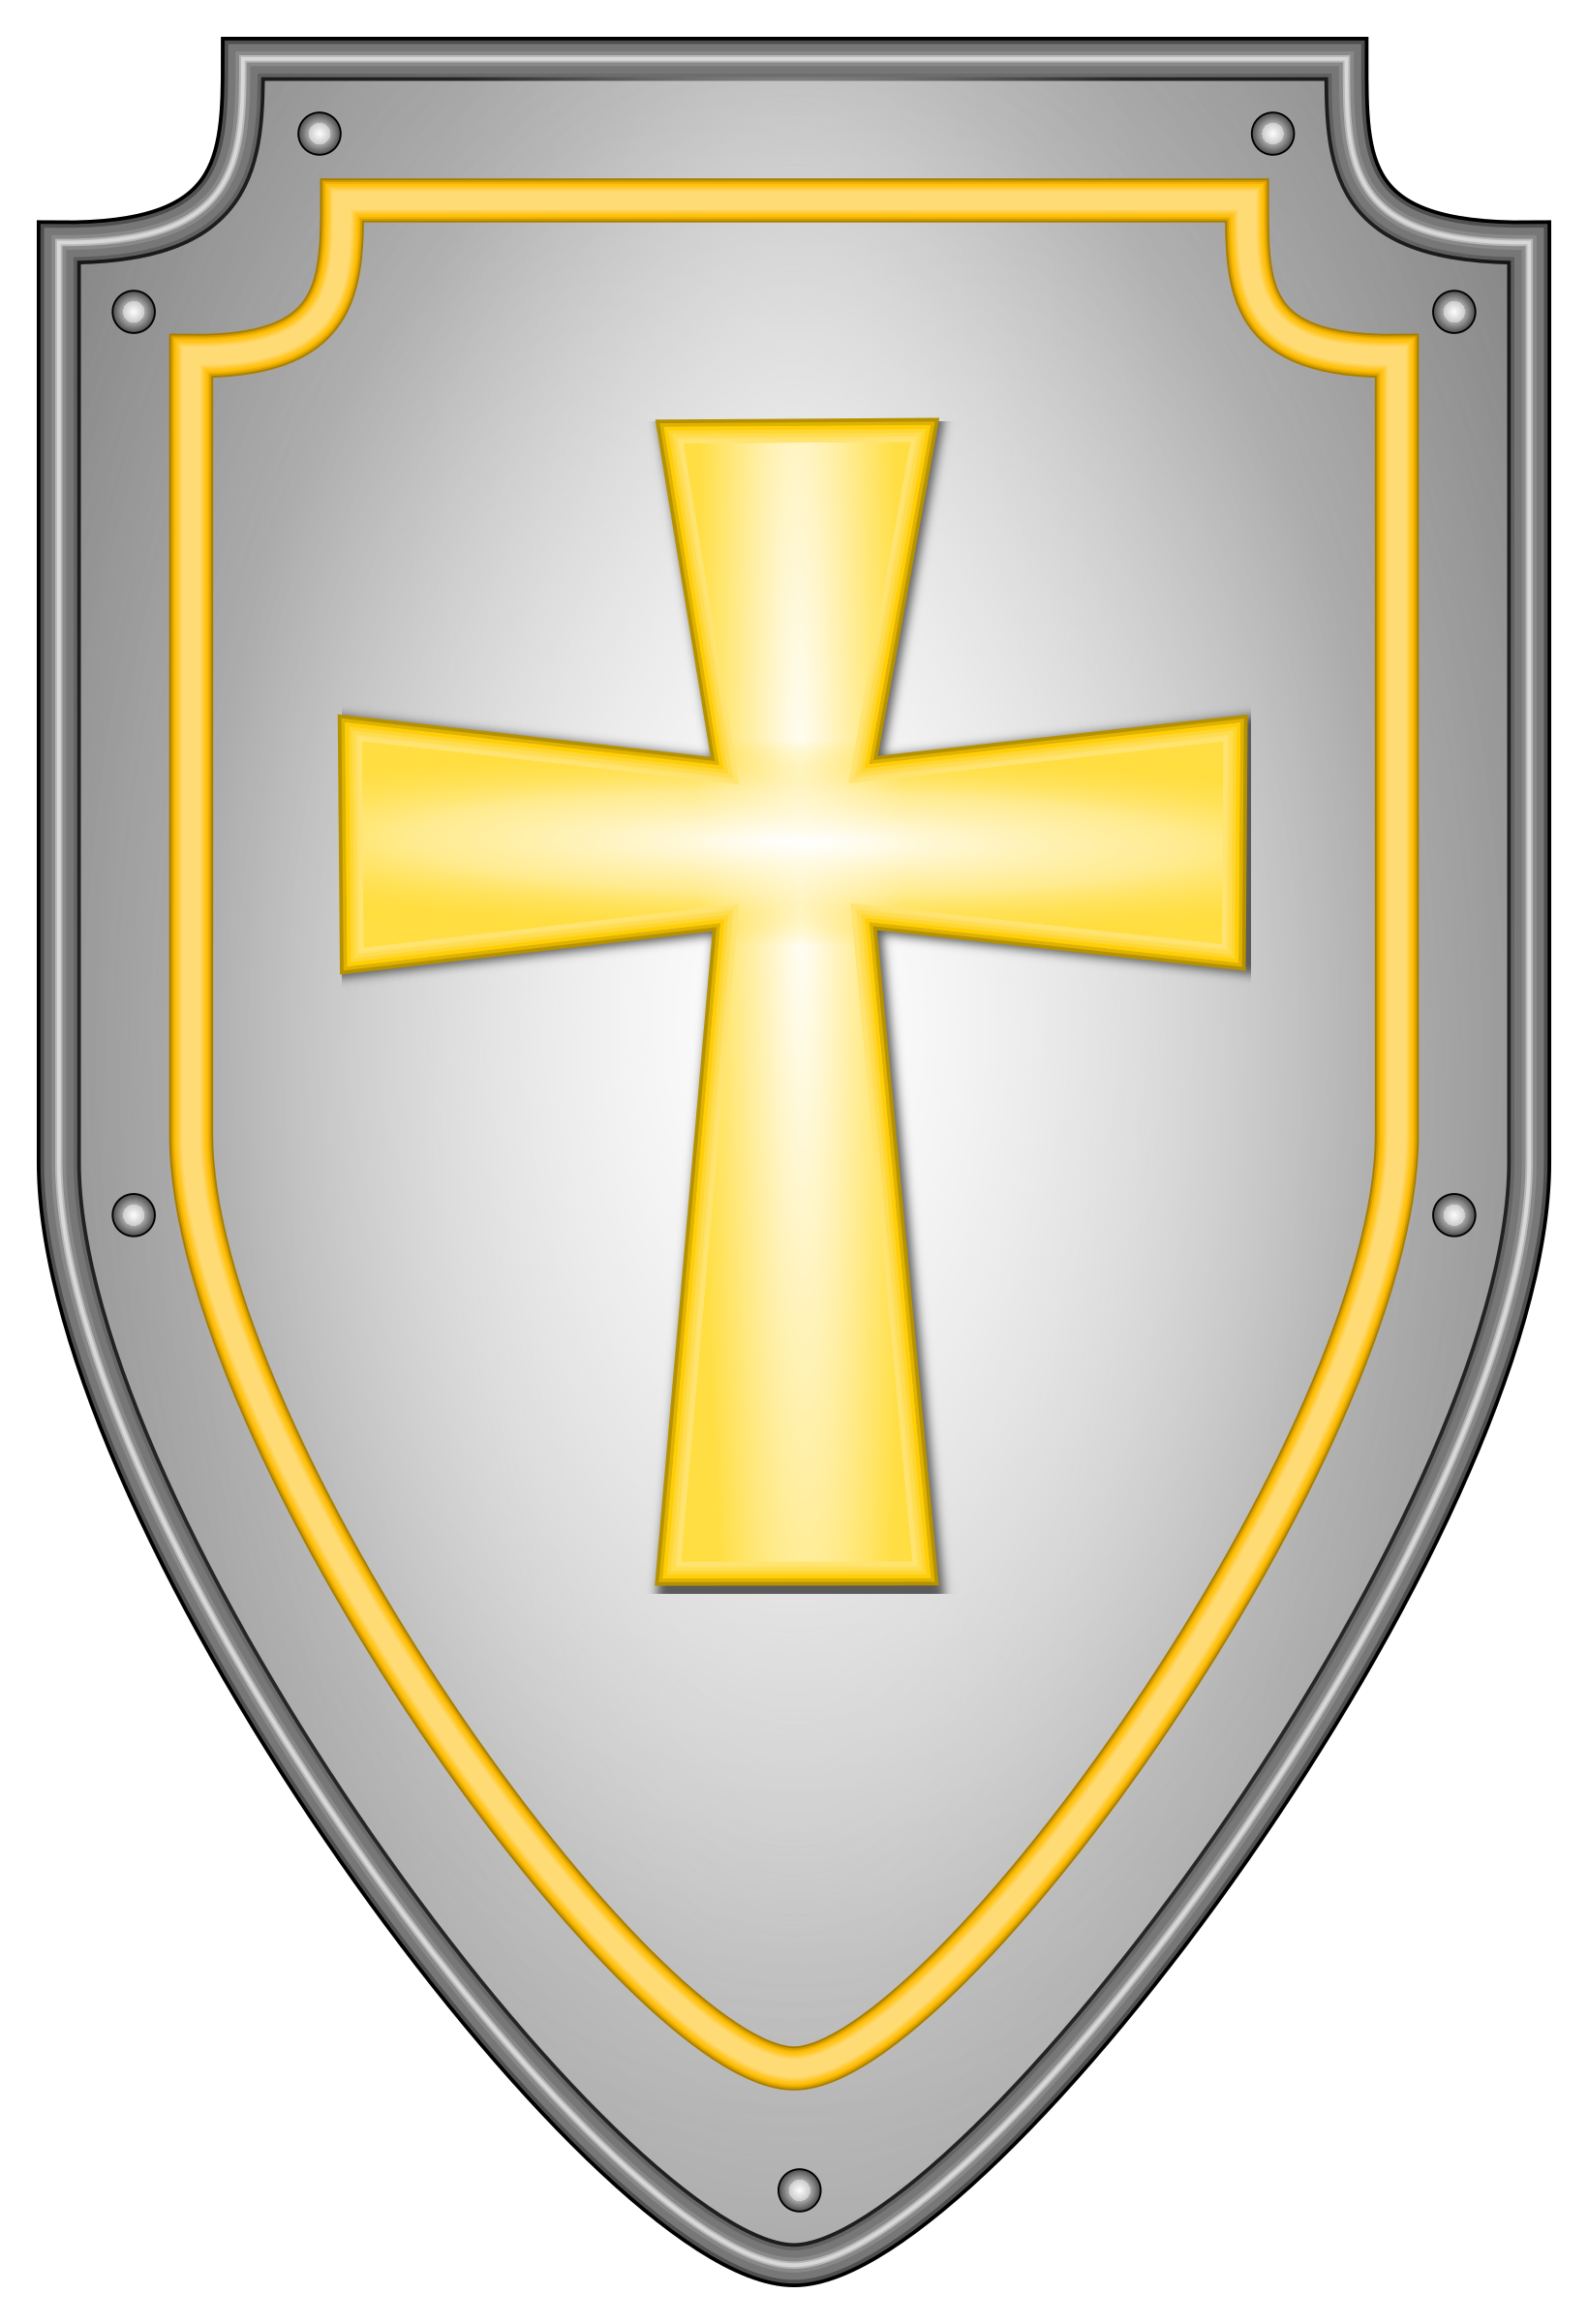 Free clipart cross shield vector freeuse library Shield With Cross Clipart vector freeuse library